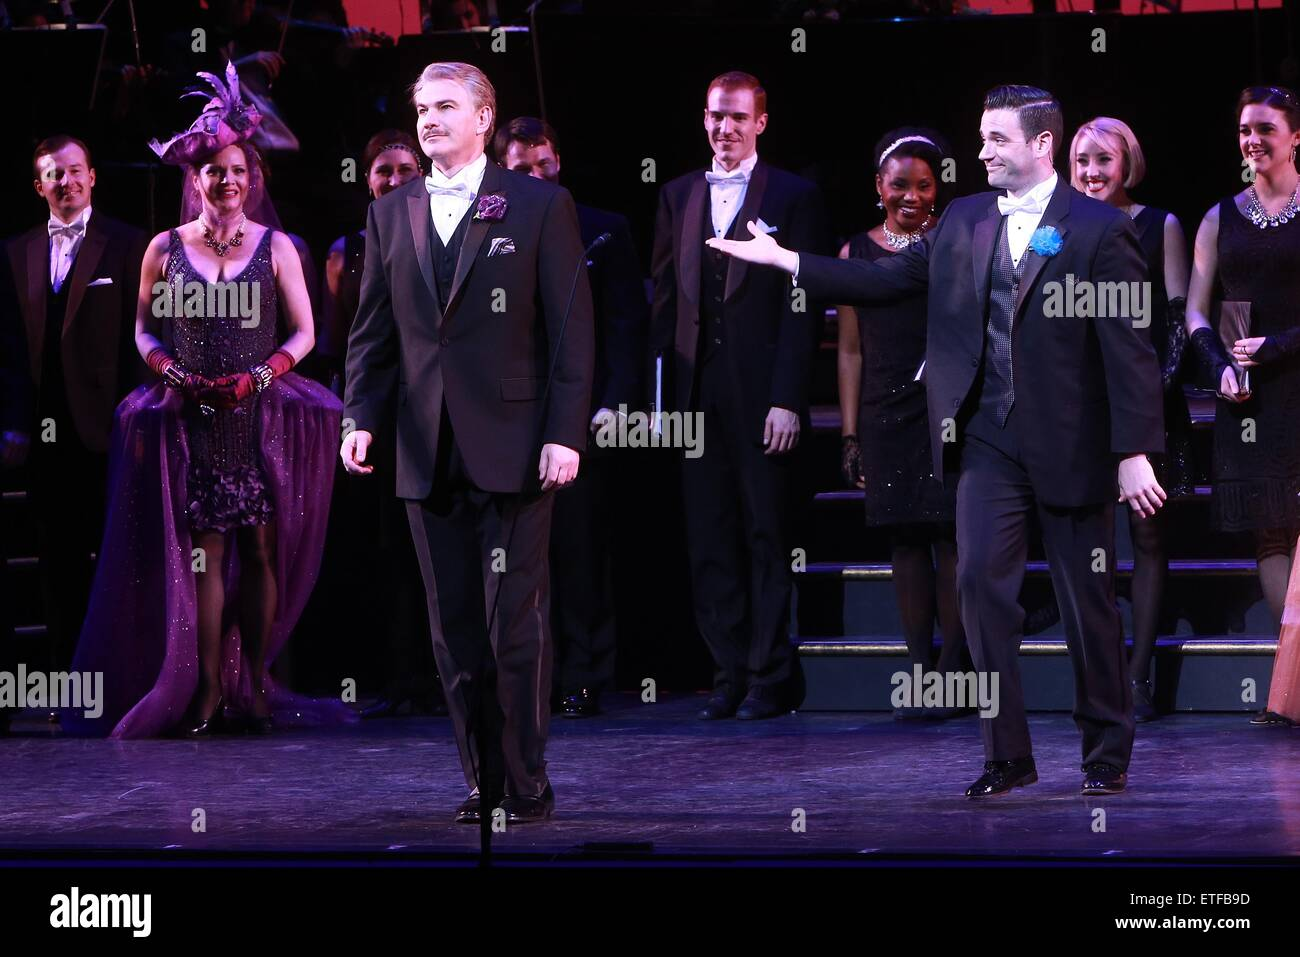 Closing night curtain call for Encores! production of Lady Be Good at NY City Center.  Featuring: Douglas Sills, - Stock Image